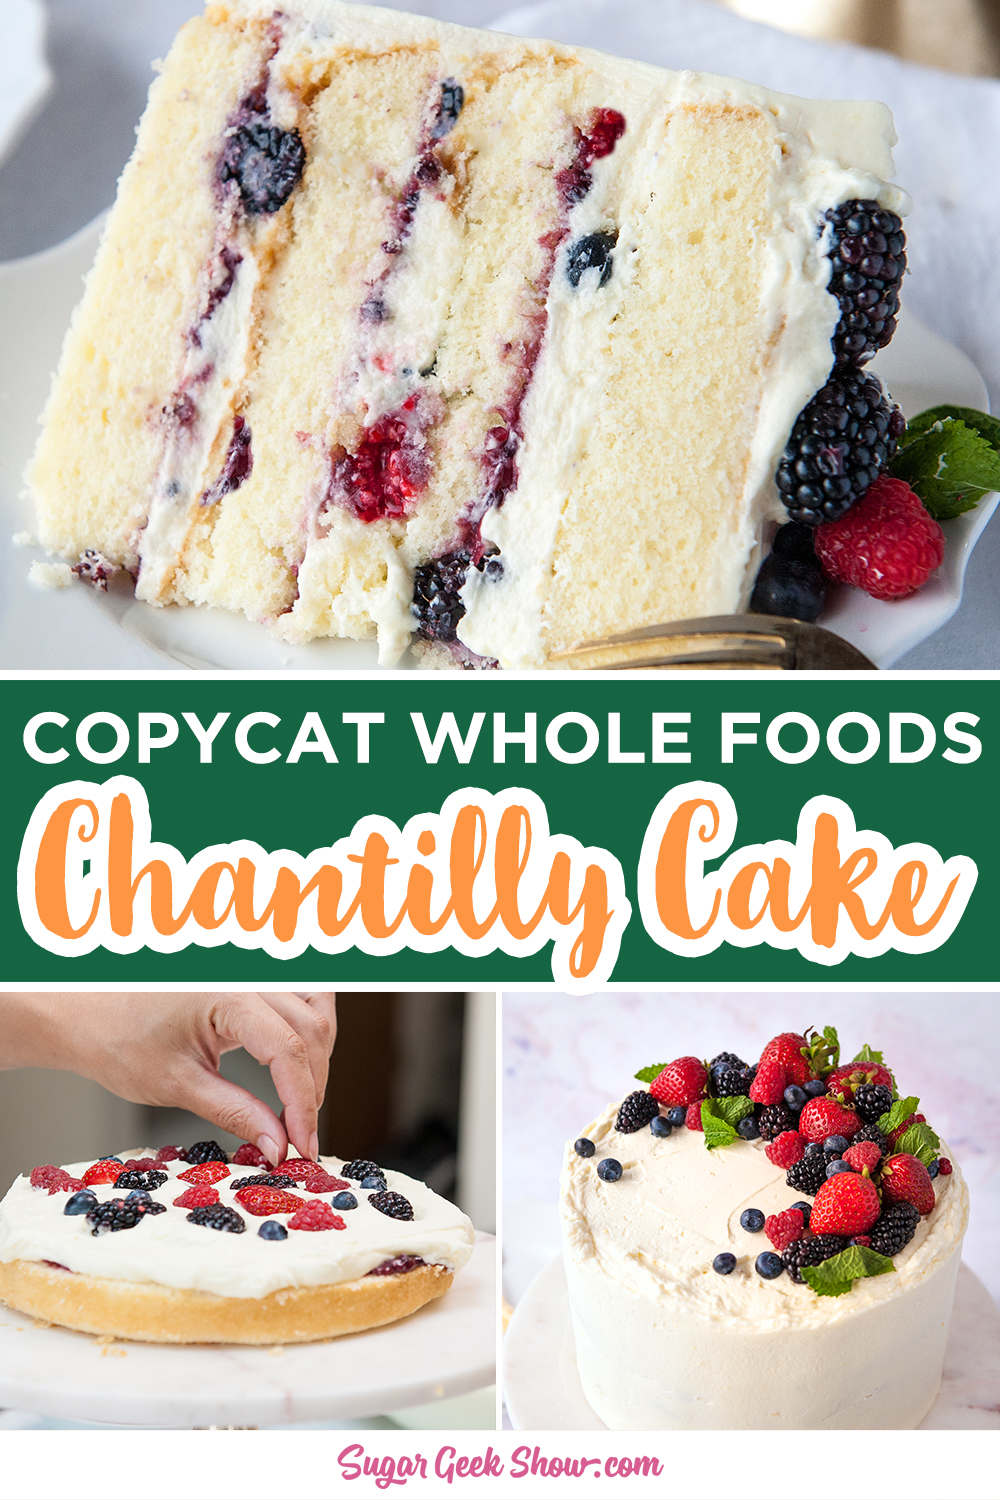 Photo of Berry Chantilly Cake With Mascarpone Frosting | Sugar Geek Show